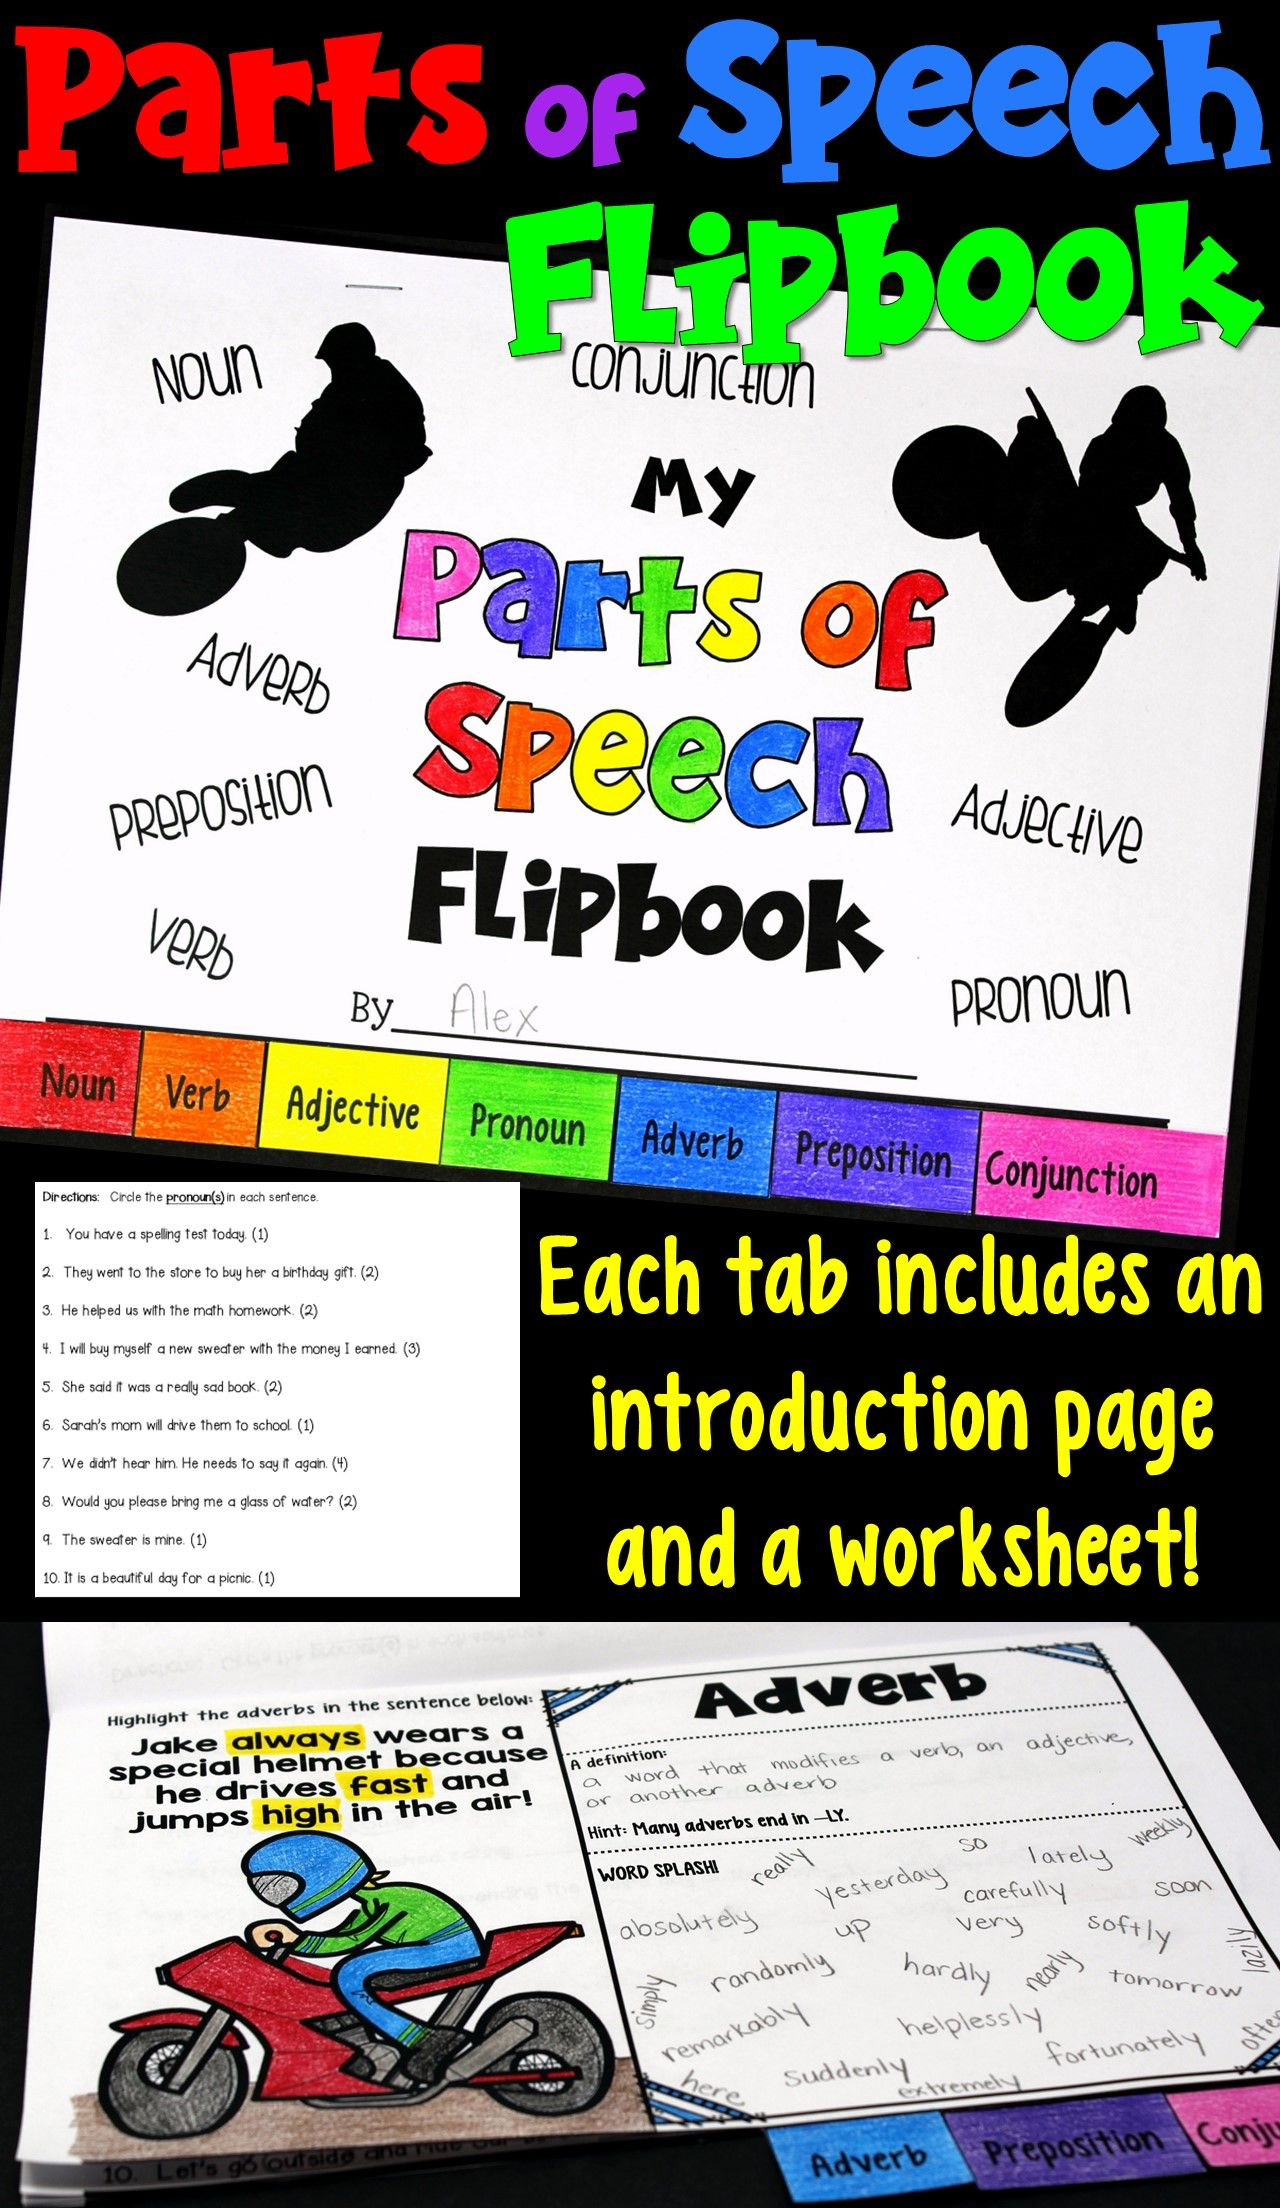 Parts Of Speech Flipbook Includes A Practice Worksheet